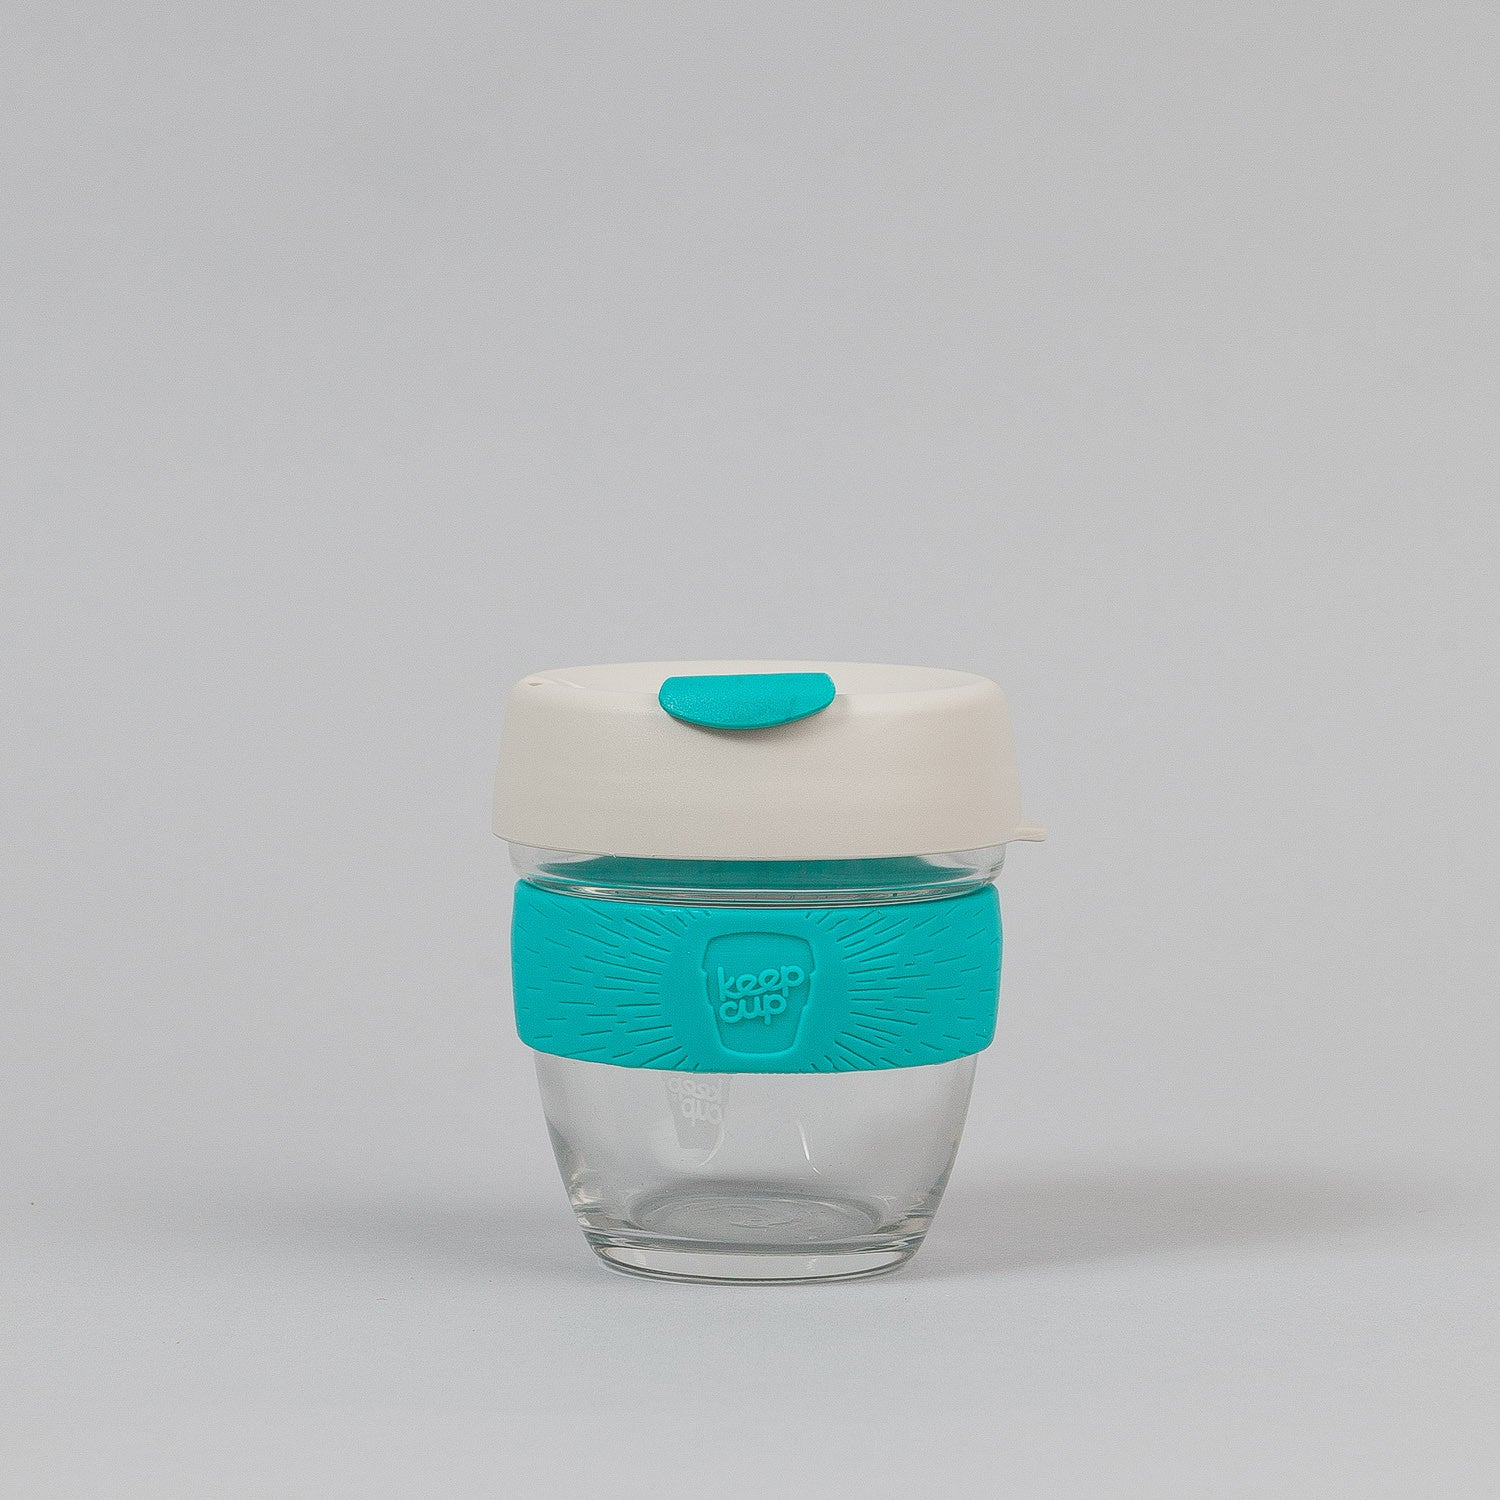 KeepCup Green 8oz Small Glass Coffee Cup - Turquoise Green